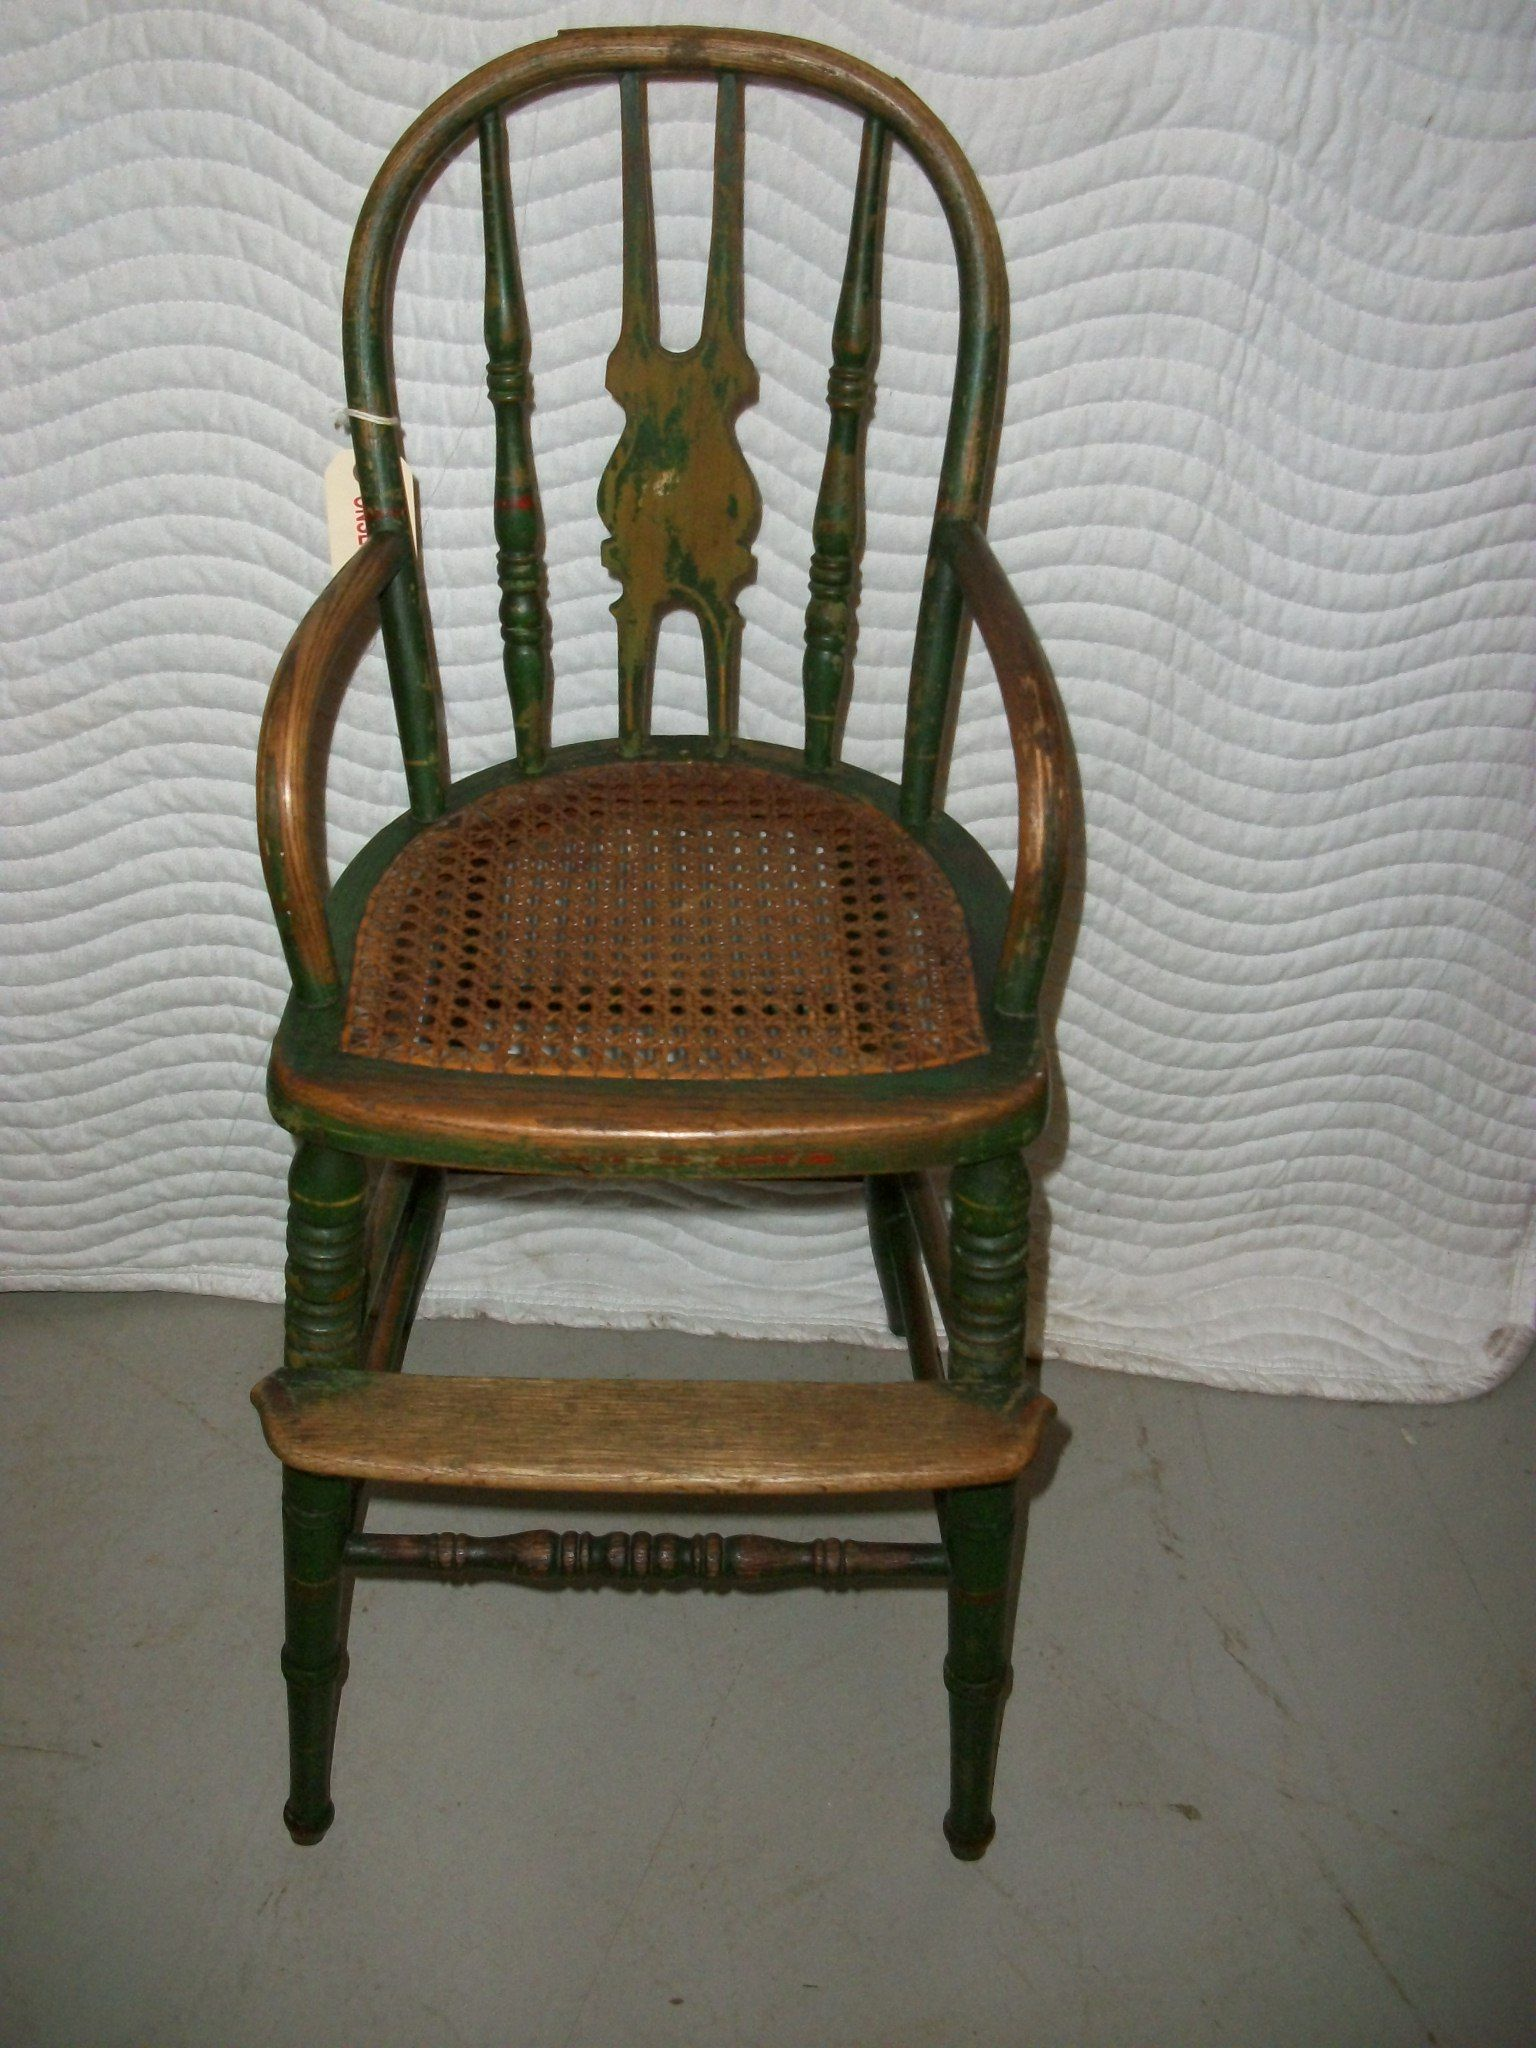 1967 4 1 high chair mid 19th century